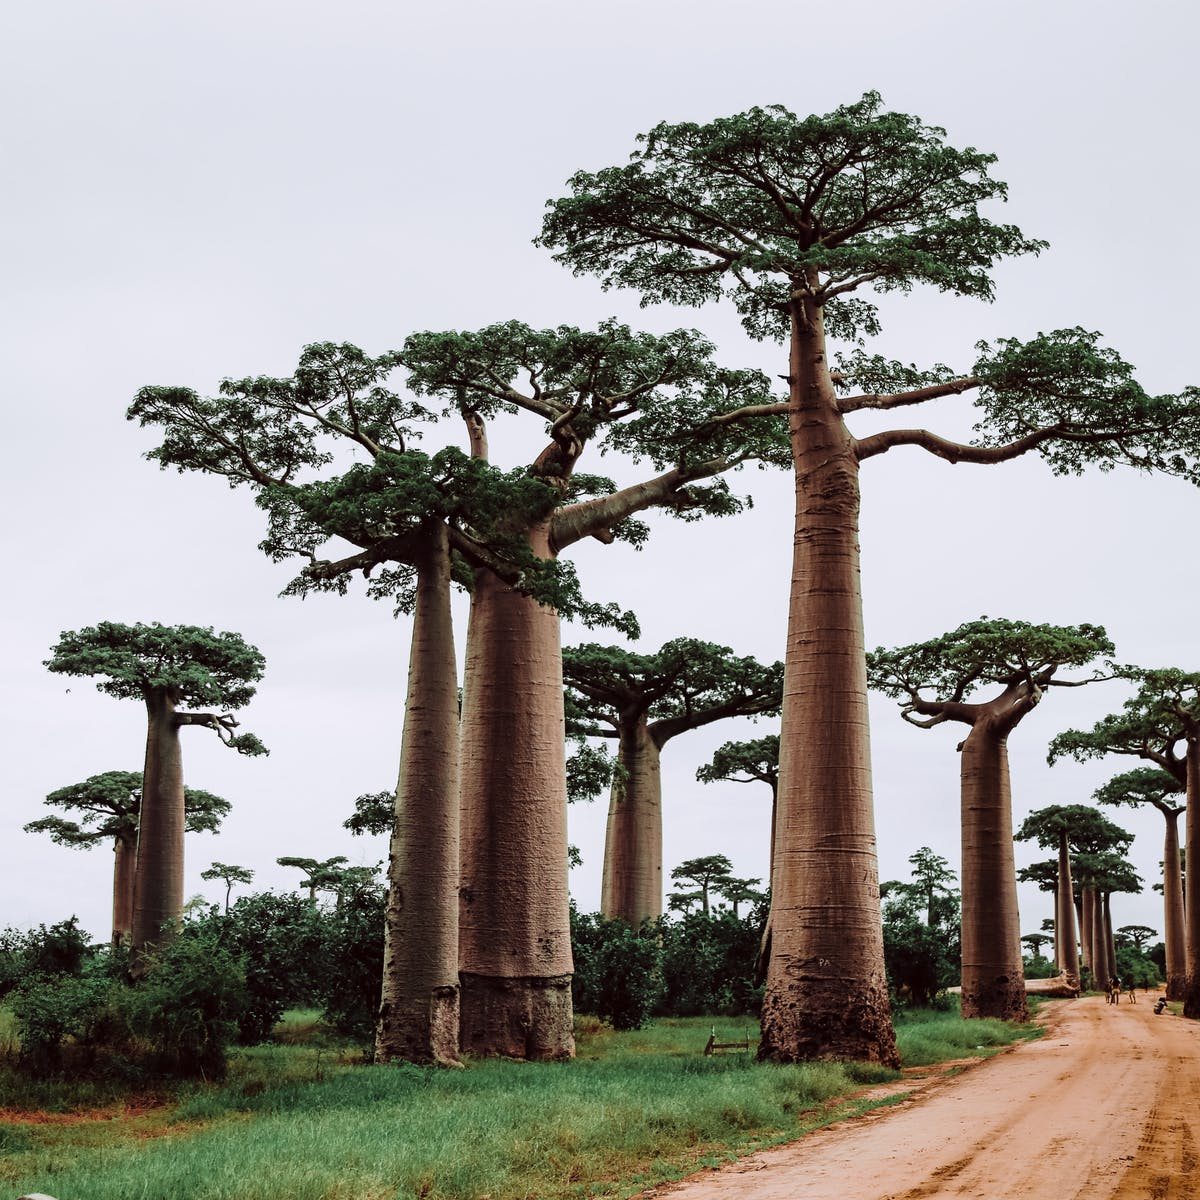 Plants Are Going Extinct Up To 350 Times Faster Than The Historical Norm